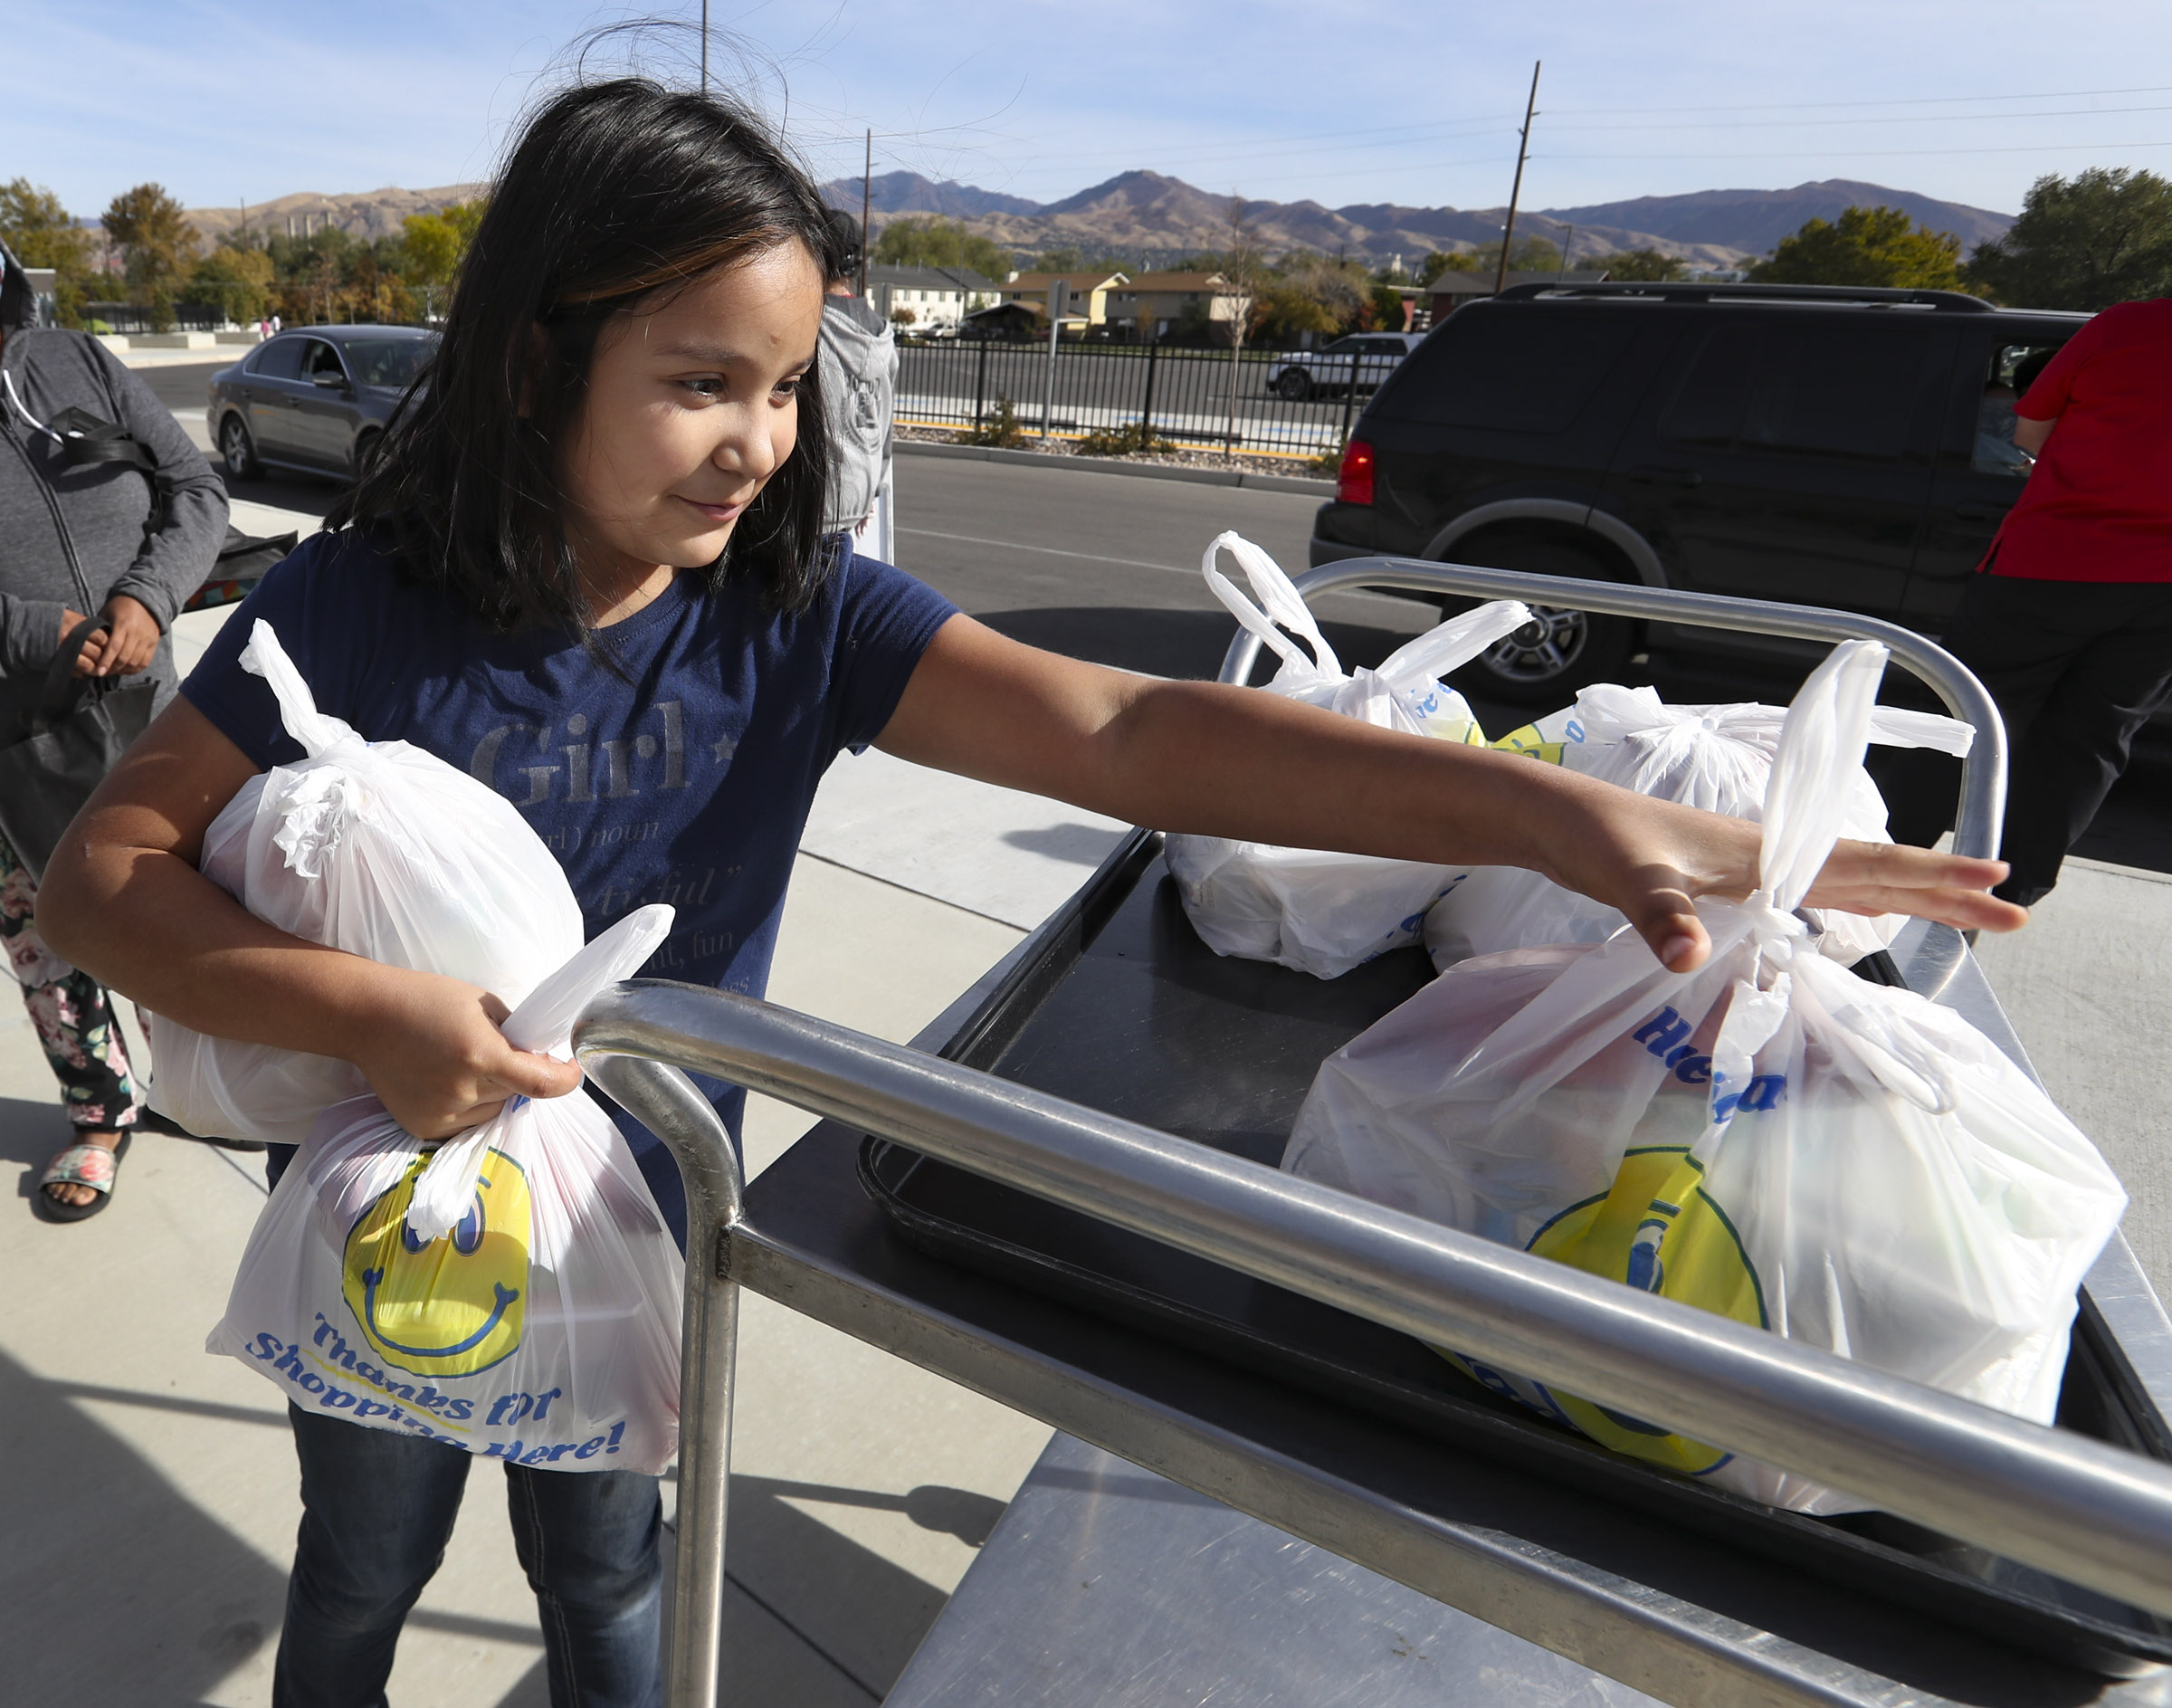 Paola Hernandez, a third grader at Edison Elementary School, gets some grab-and-go lunches for her family at the school in Salt Lake City on Thursday, Oct. 15, 2020. To help meet the food need of students, the Salt Lake Education Foundation with the help of Smith's Food & Drug are providing 5,200 meals to students. The Salt Lake City School District's child nutrition department will give out these additional meals at Edison and Escalante elementary schools. The donation from Smith's Food & Drug Stores supports the company's Zero Hunger | Zero Waste plan which is aiming to end hunger in communities and eliminate waste across the company by 2025.